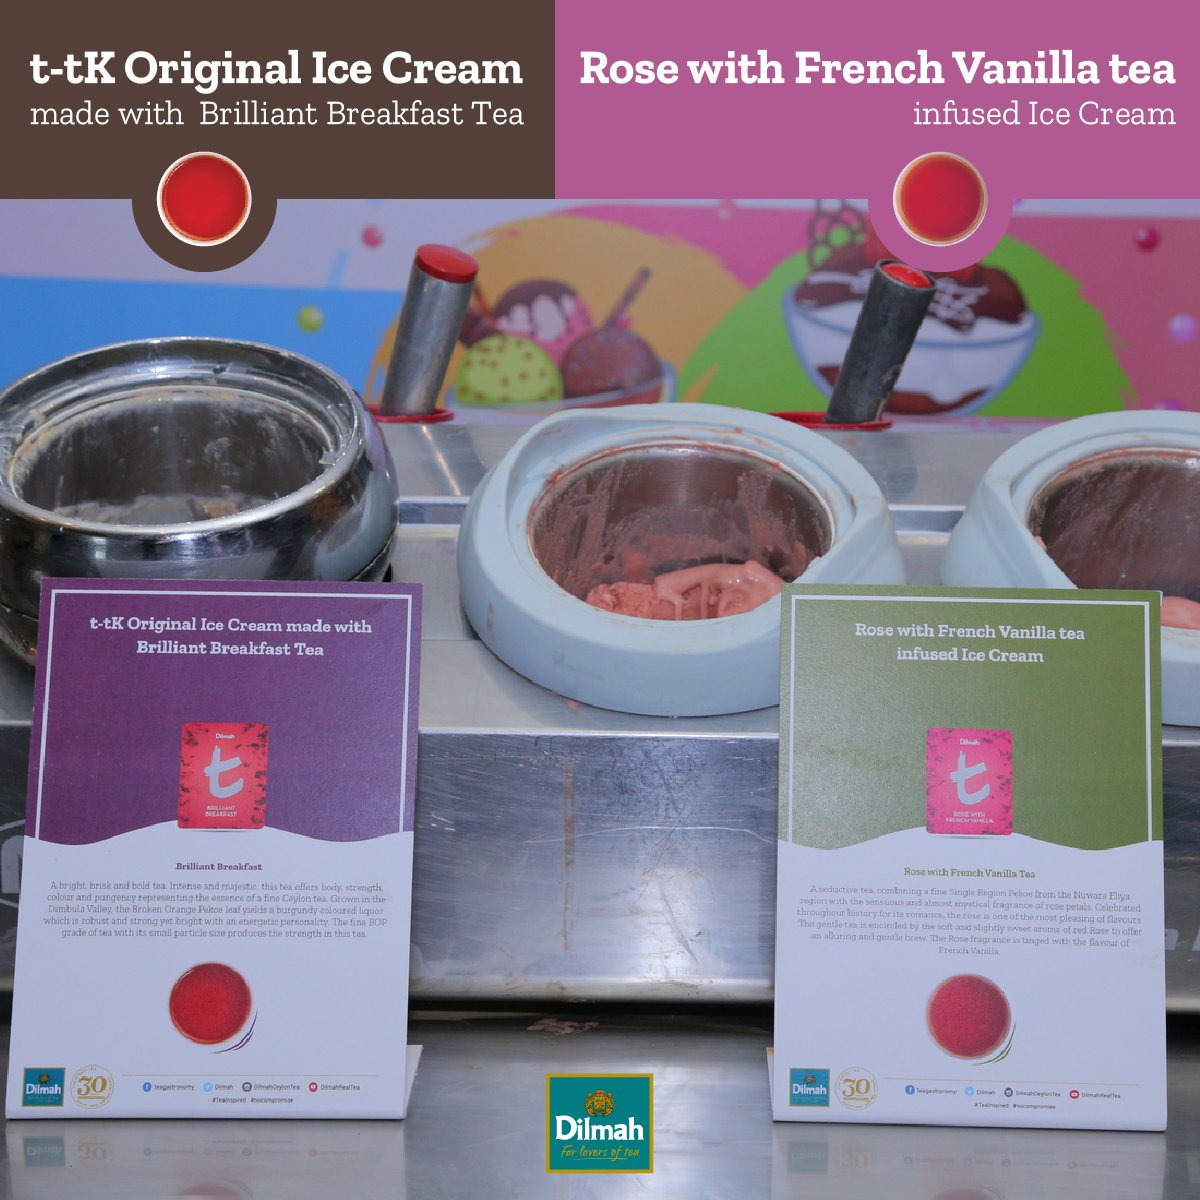 Dilmahpartners Twitter Search Dilmah Rose With French Vanilla 0 Replies Retweets Likes